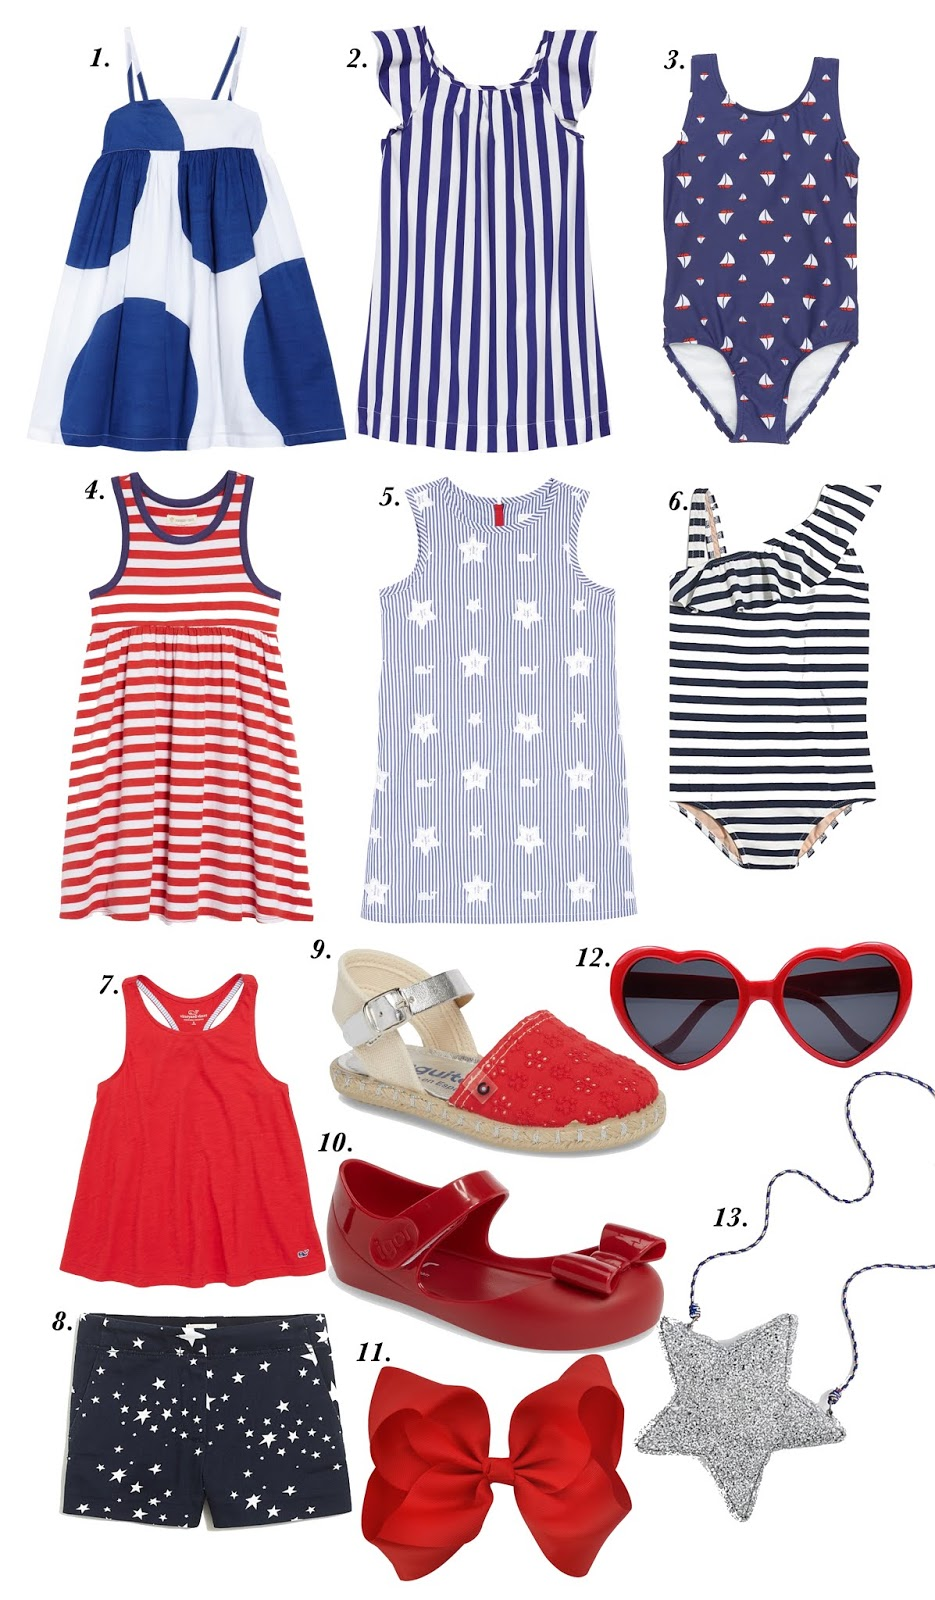 July 4th Outfit Inspiration for Kids - Something Delightful Blog